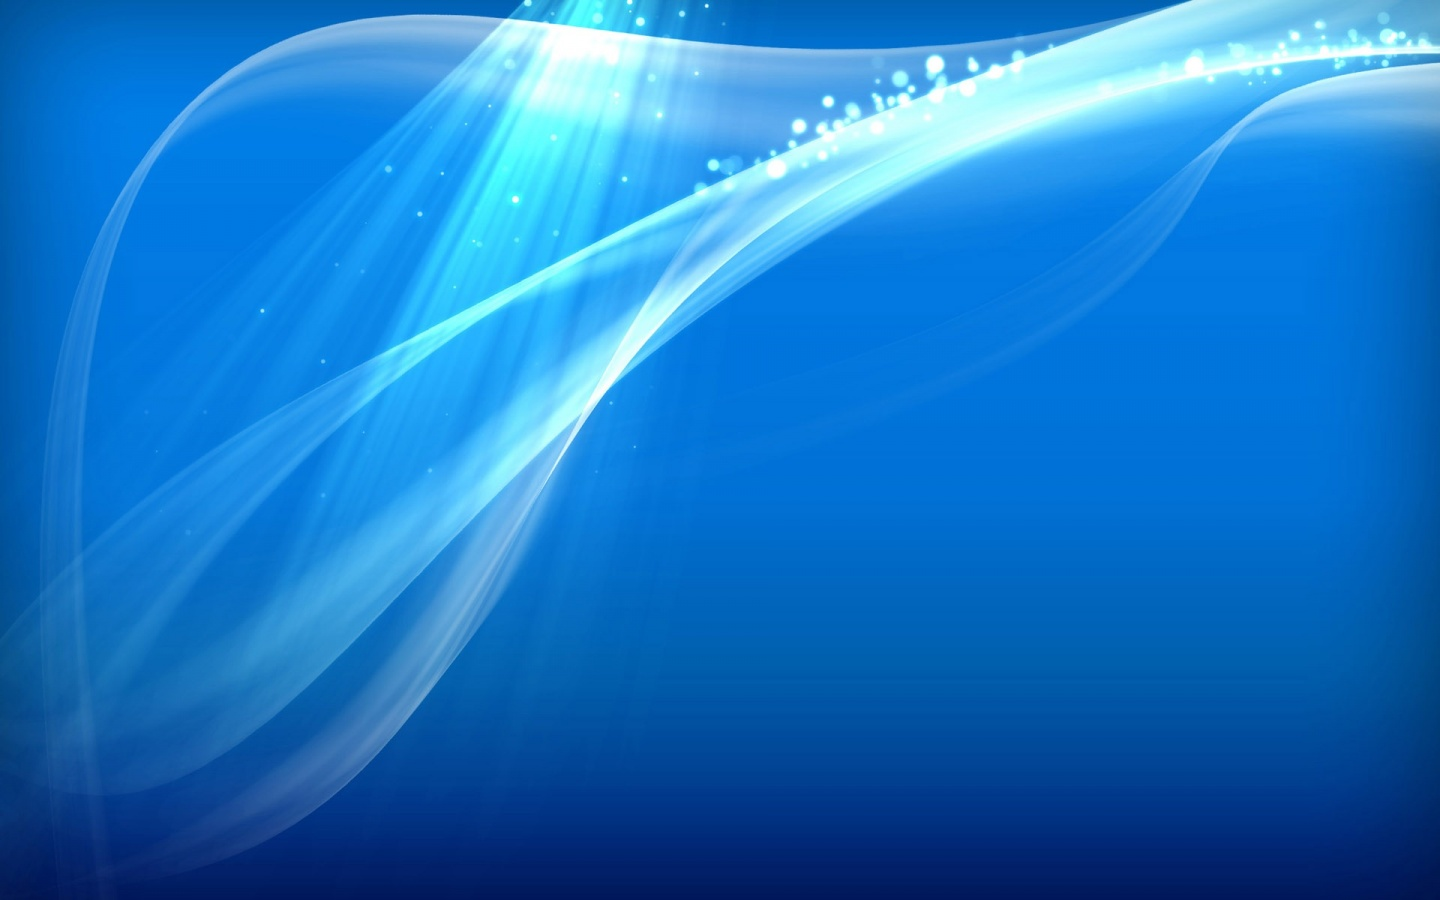 blue background abstract wallpapers in jpg format for free download